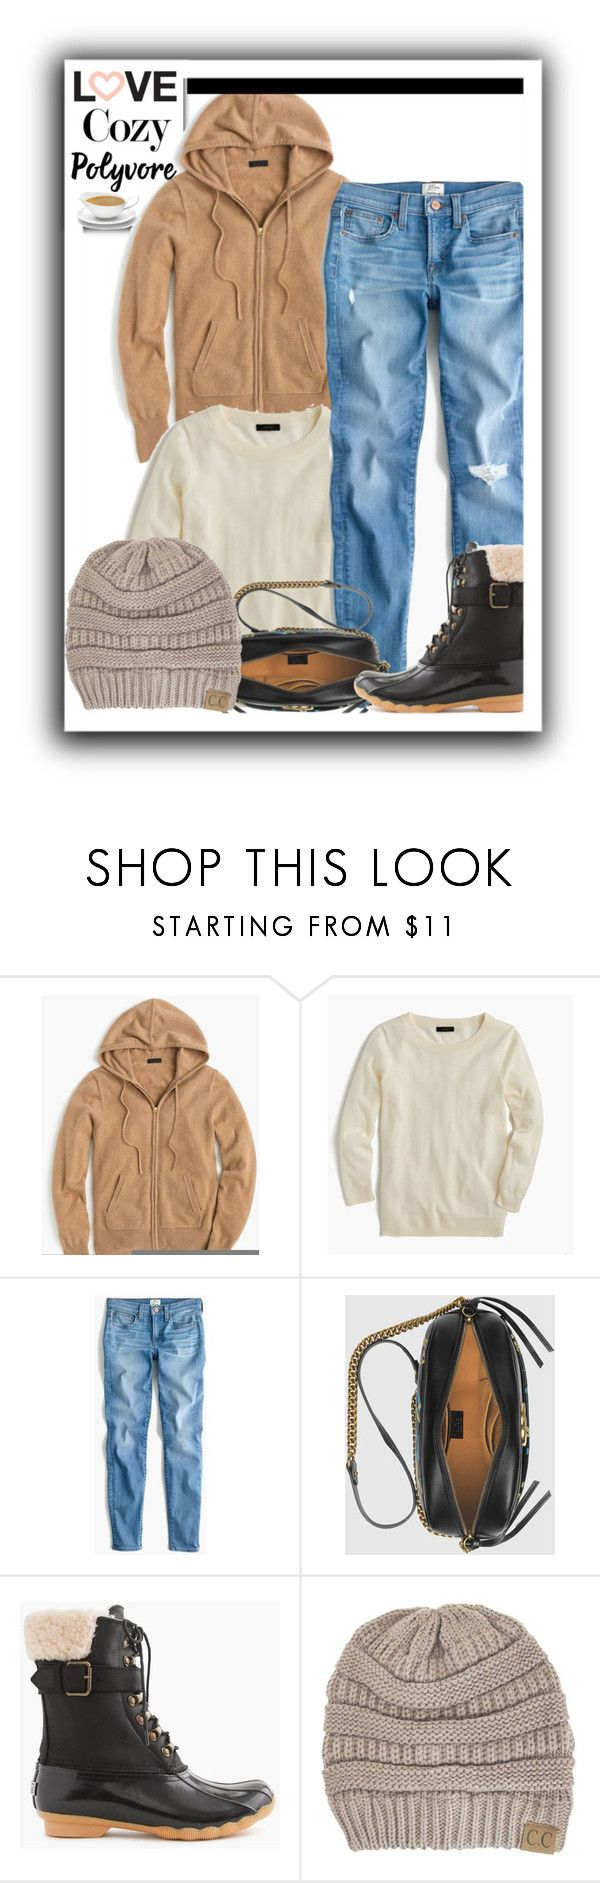 """""""Love Cozy Ladies"""" by heavenlyangel161 ❤ liked on Polyvore featuring J.Crew, Gucci, Sperry and C.C"""